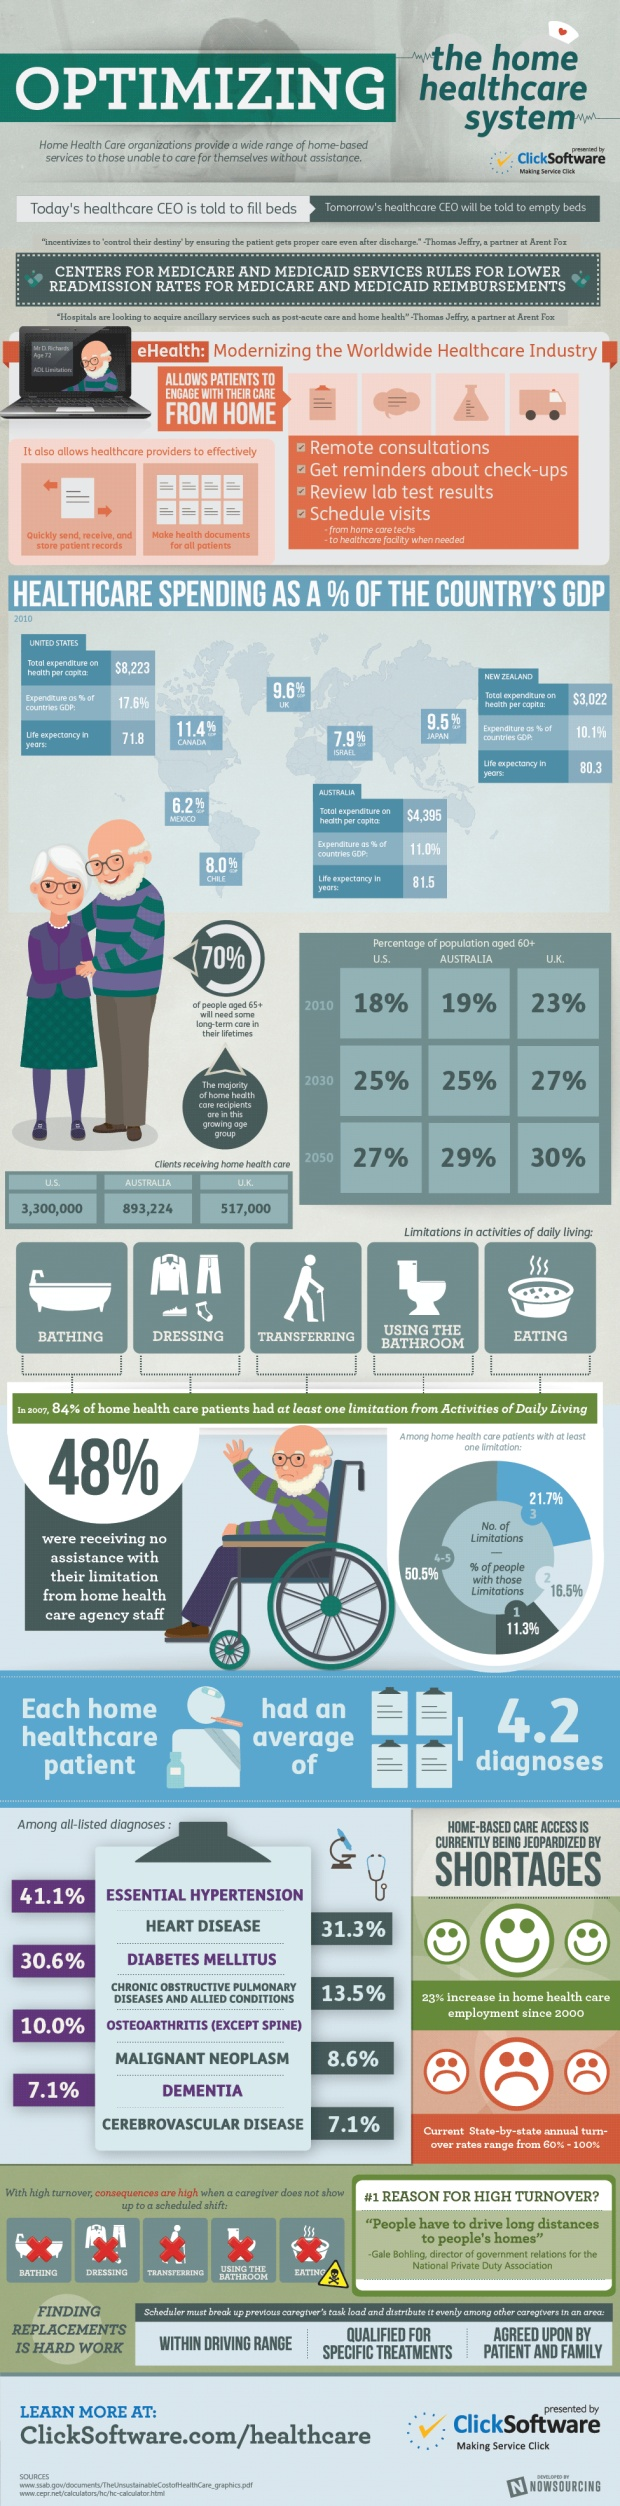 take a look at the changing face and optimization of home healthcare. #healtheco #futurofhealth